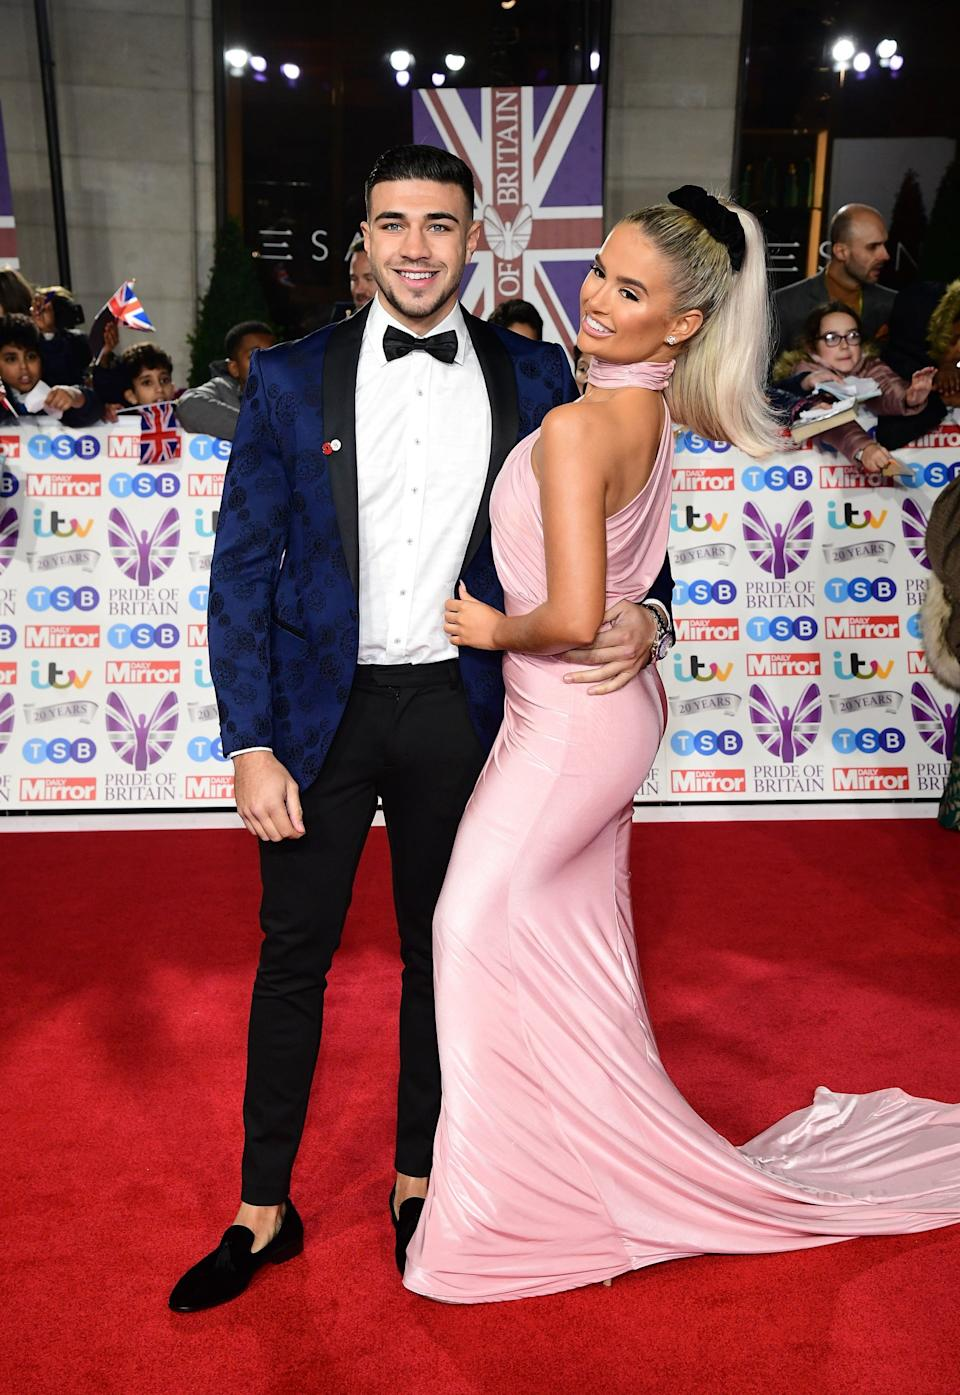 Tommy and Molly-Mae looked every inch the glamourous couple (PA)